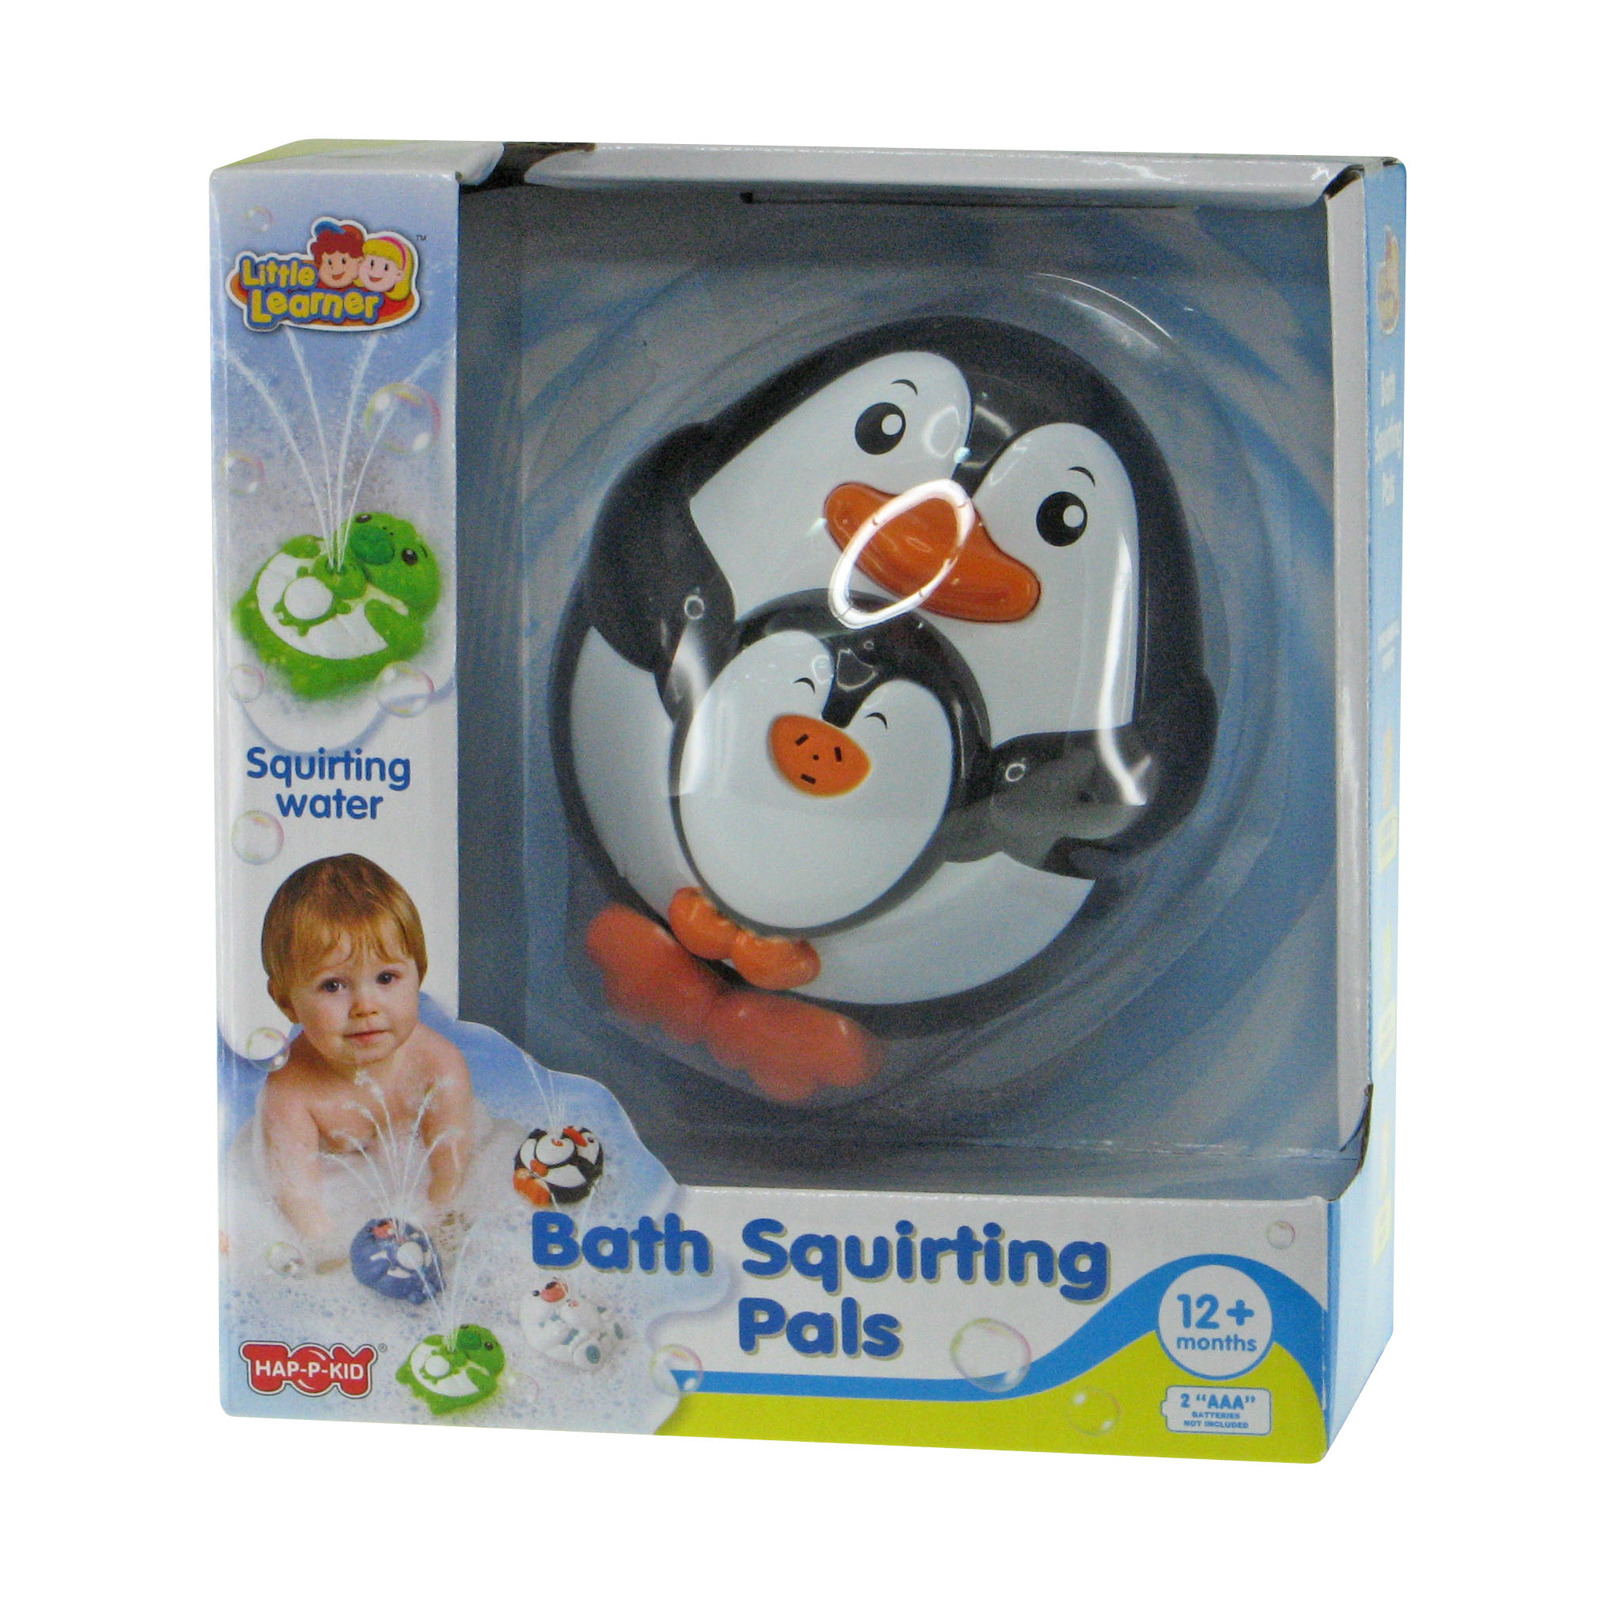 Hap-P-Kid Bath Squirting Pals Assorted